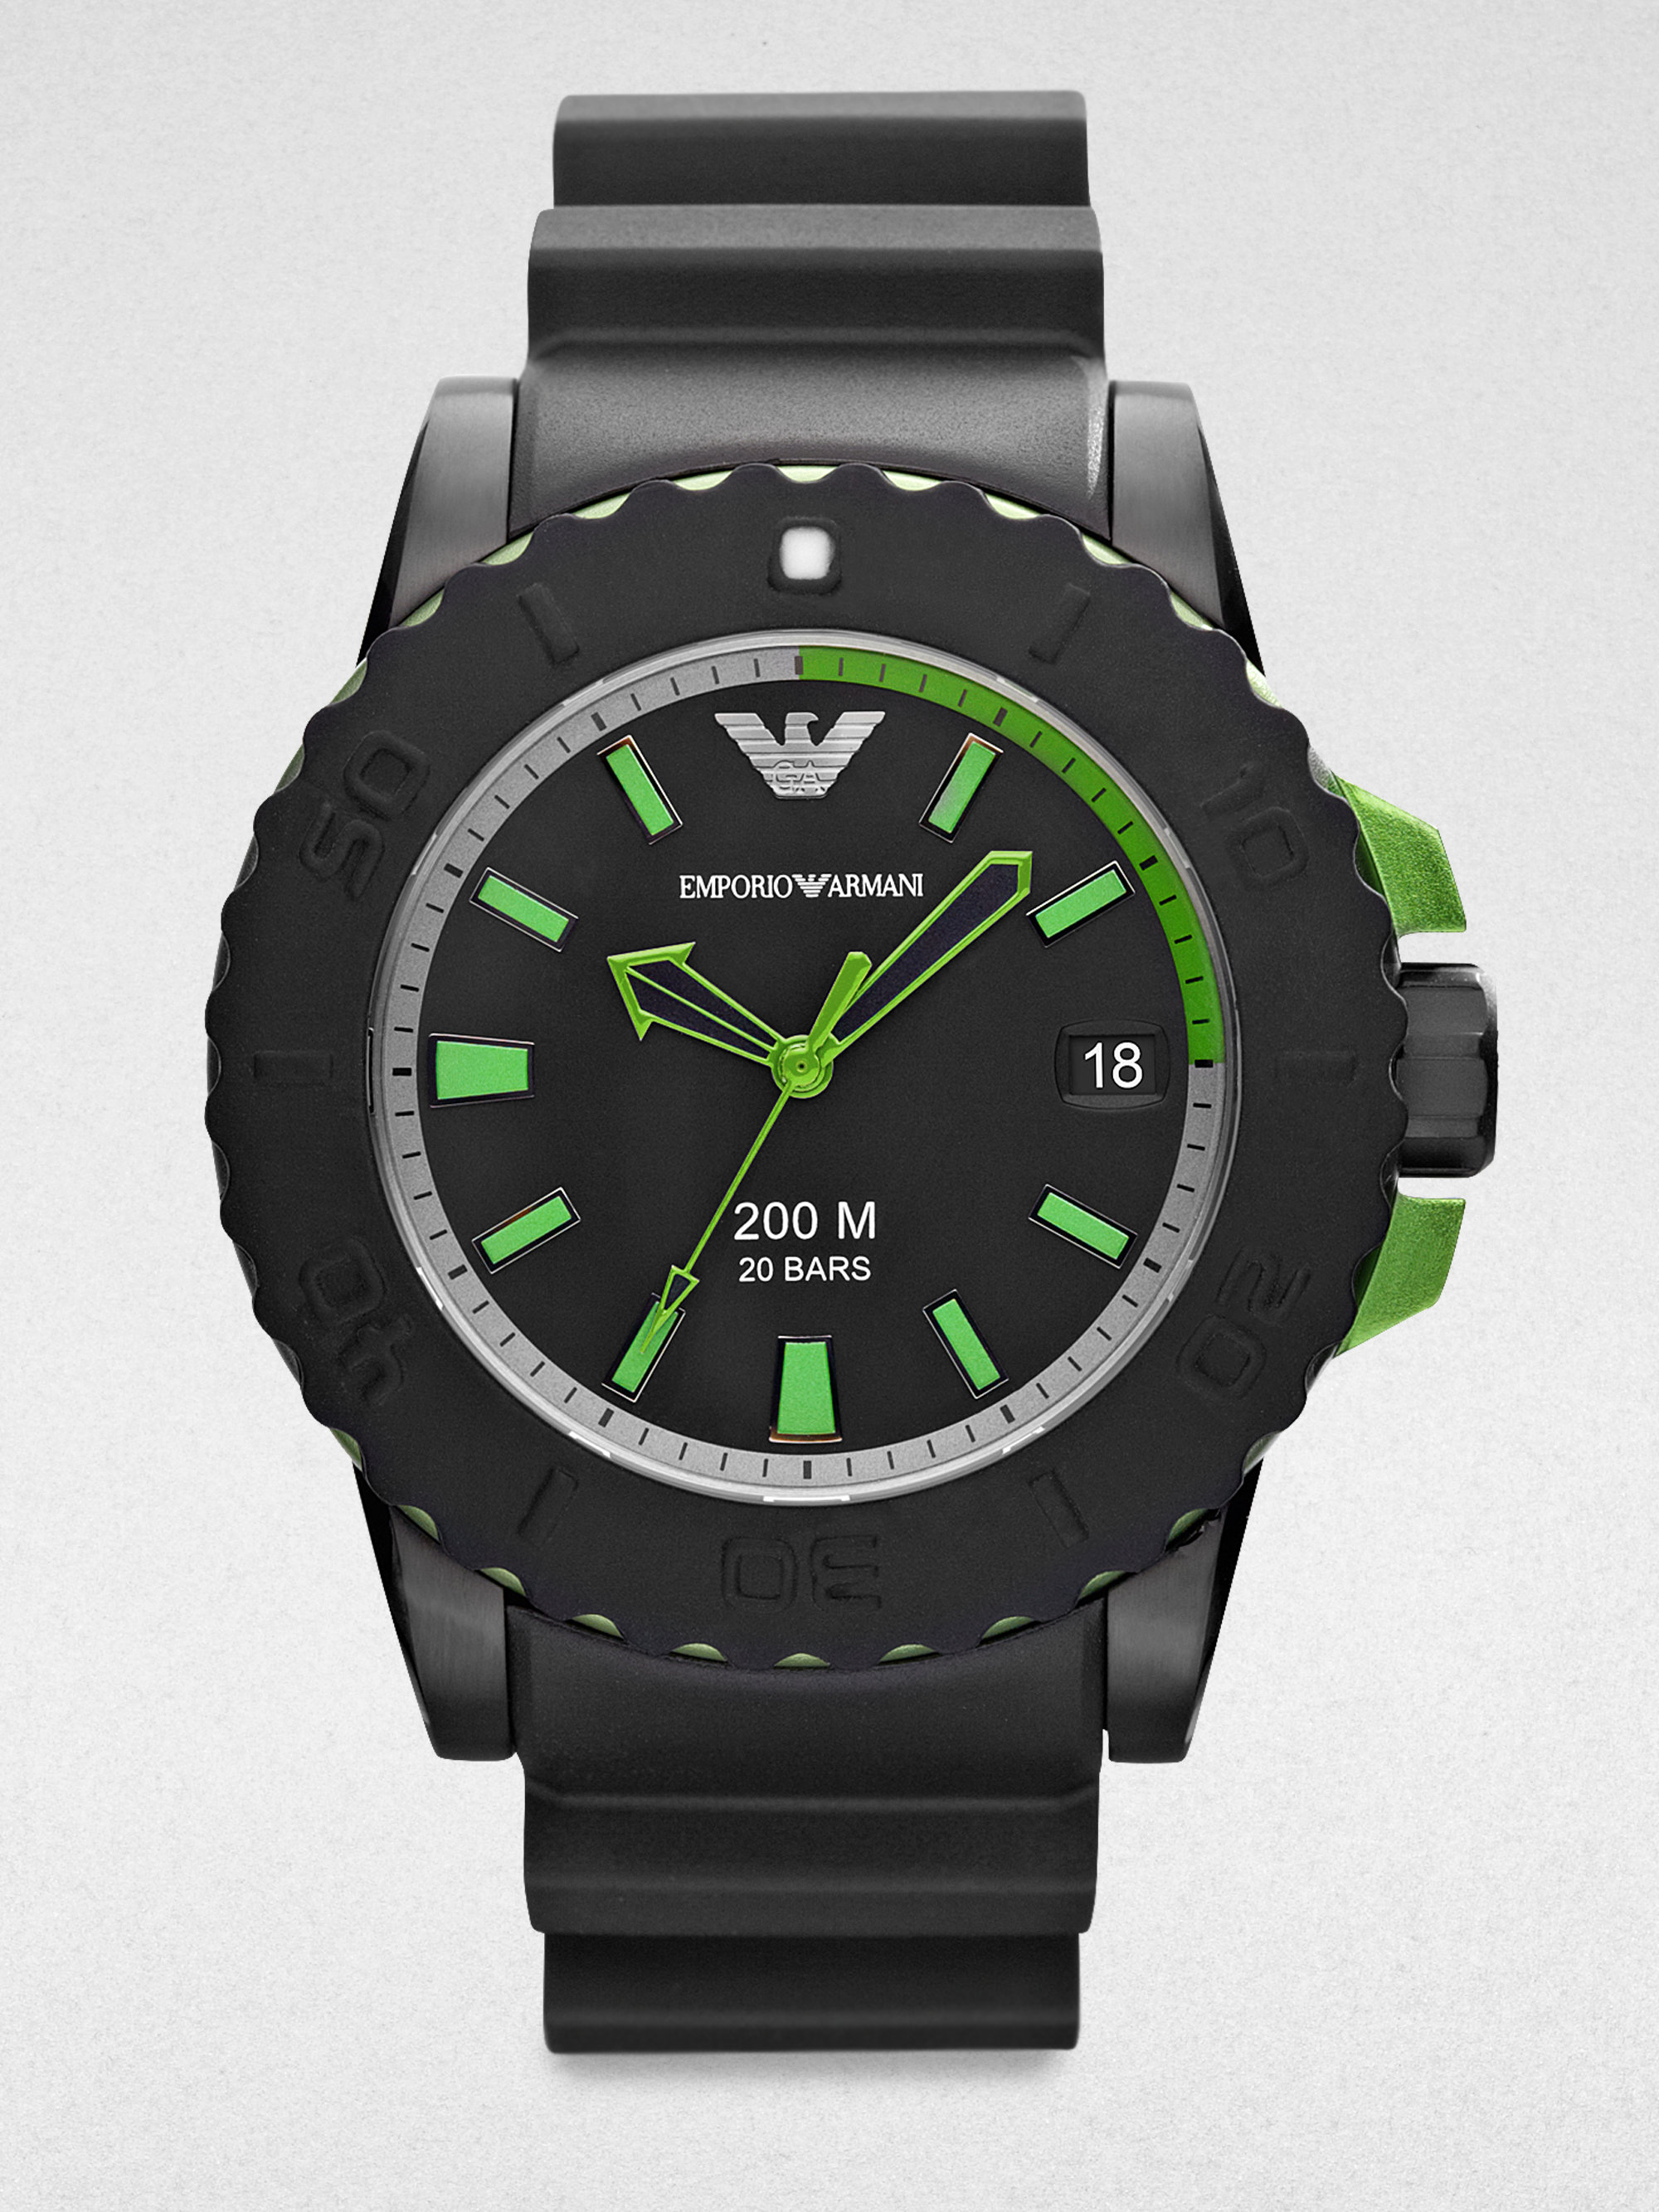 emporio armani stainless steel chronograph watch in green. Black Bedroom Furniture Sets. Home Design Ideas